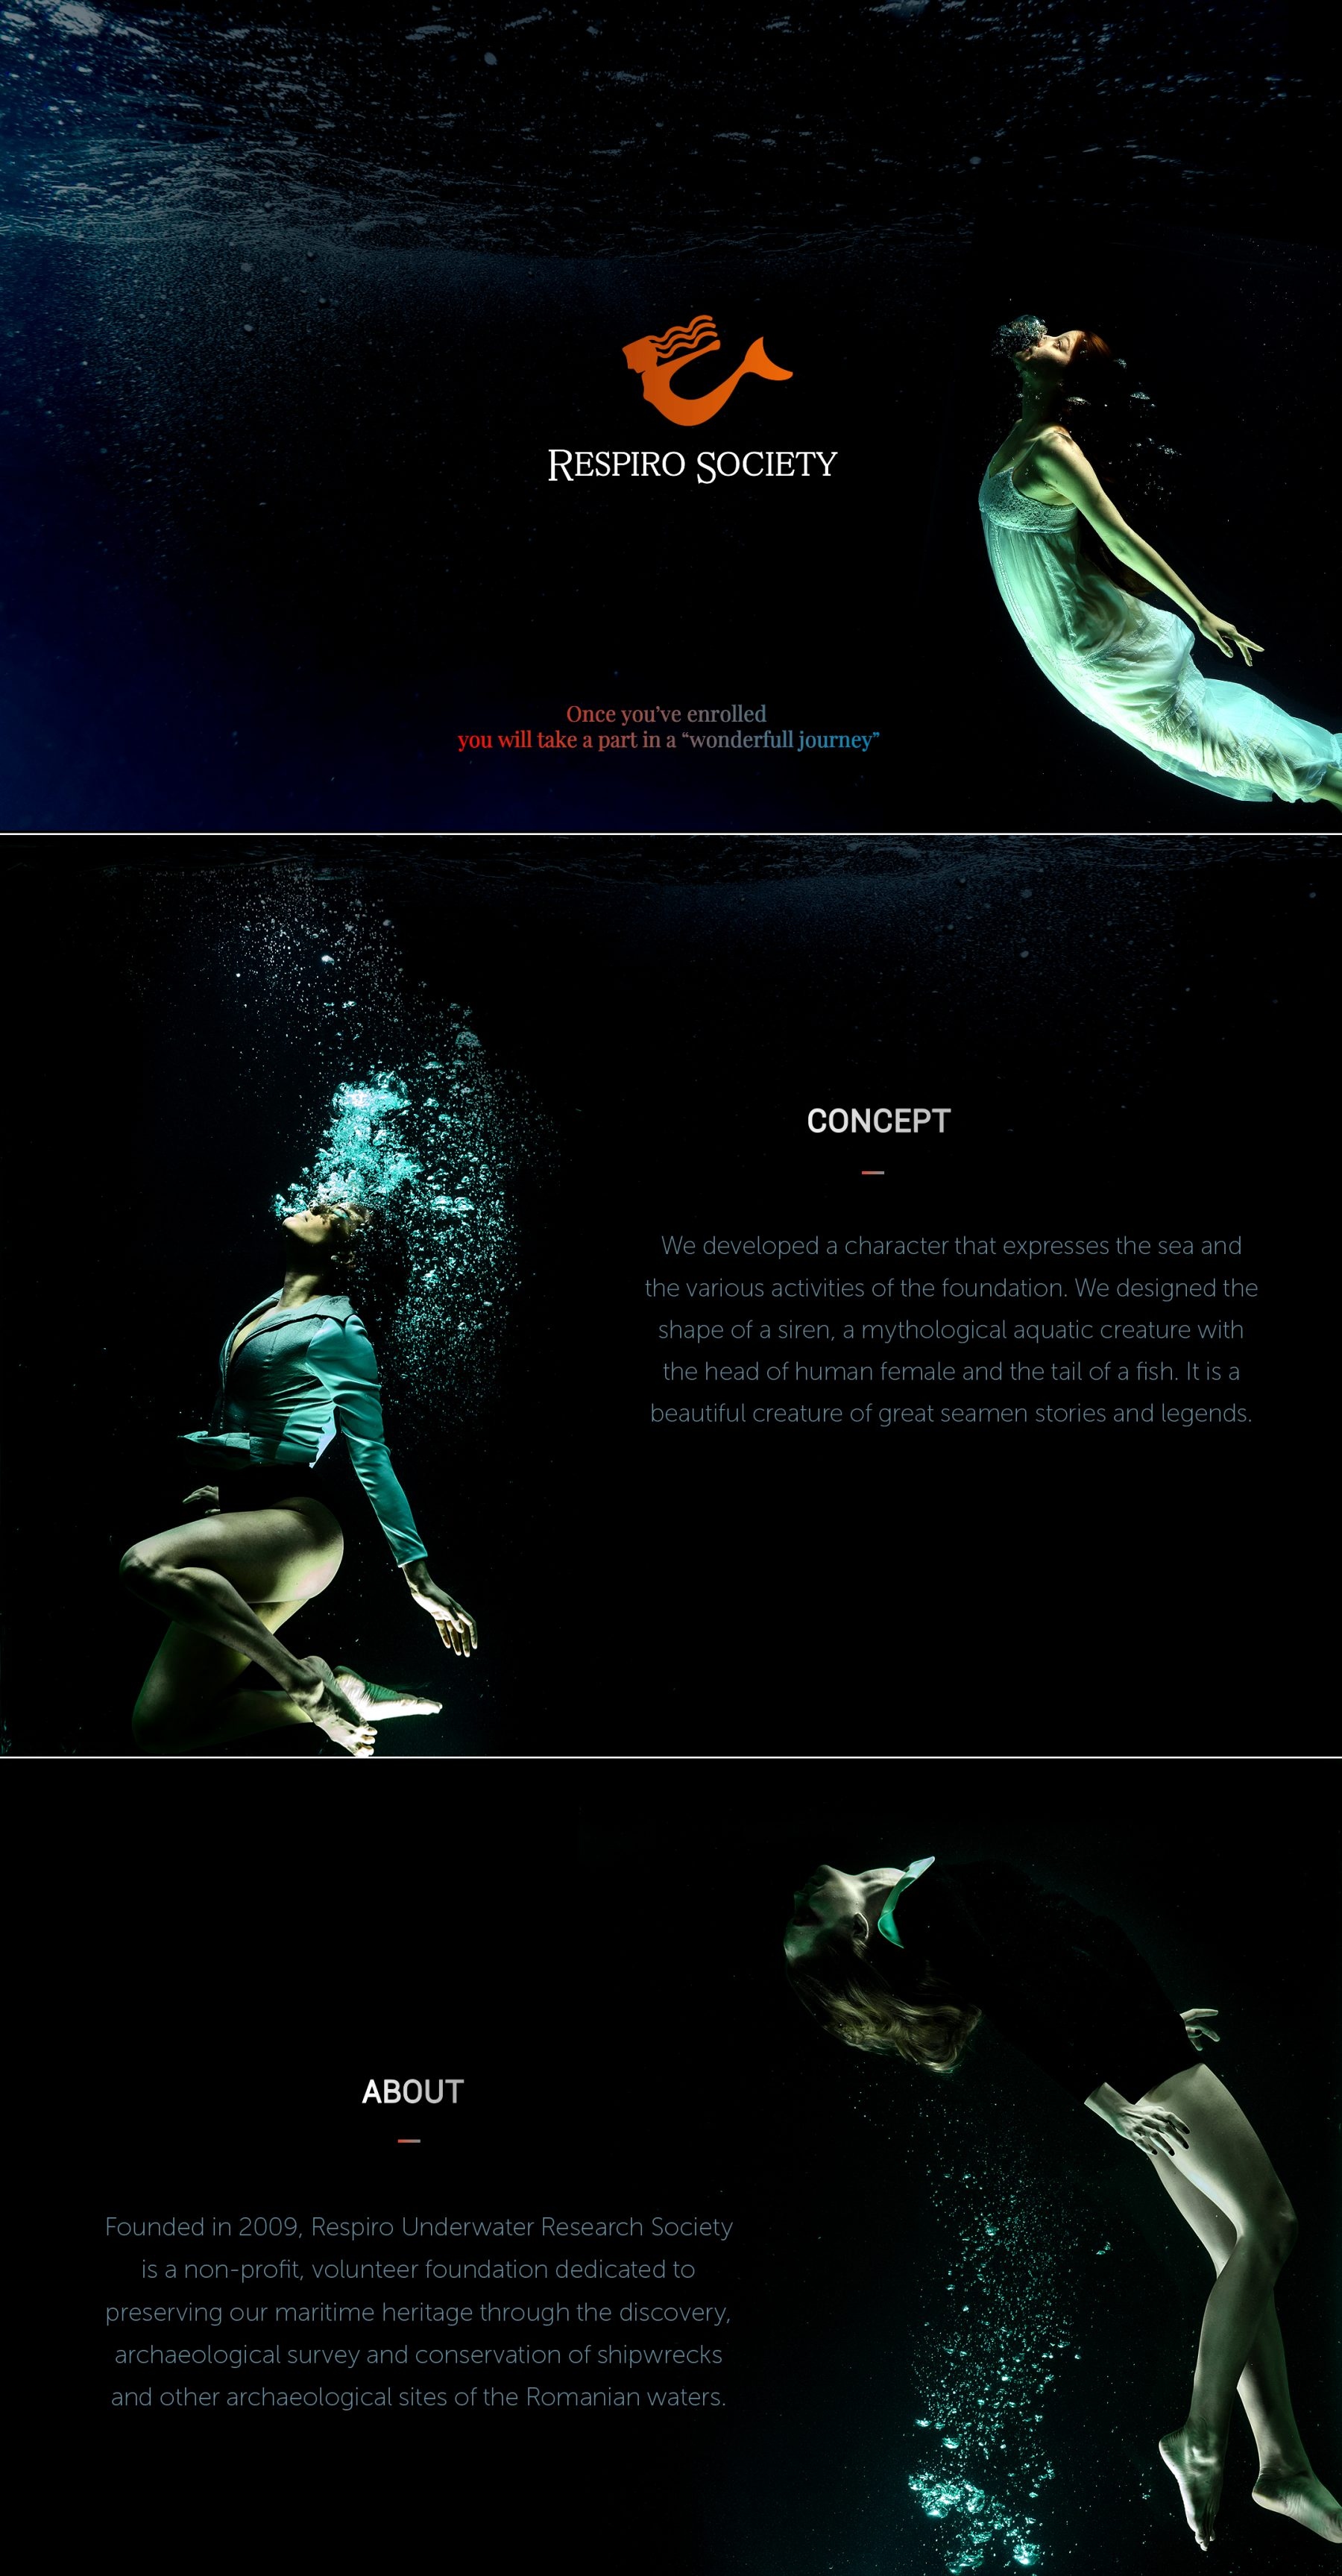 Respiro, Underwater, Research, Society, non-profit, volunteer, foundation, dedicated, researching, documenting, preserving, habitat, components, divers, archaeologists, scientists, explore, marine past, team